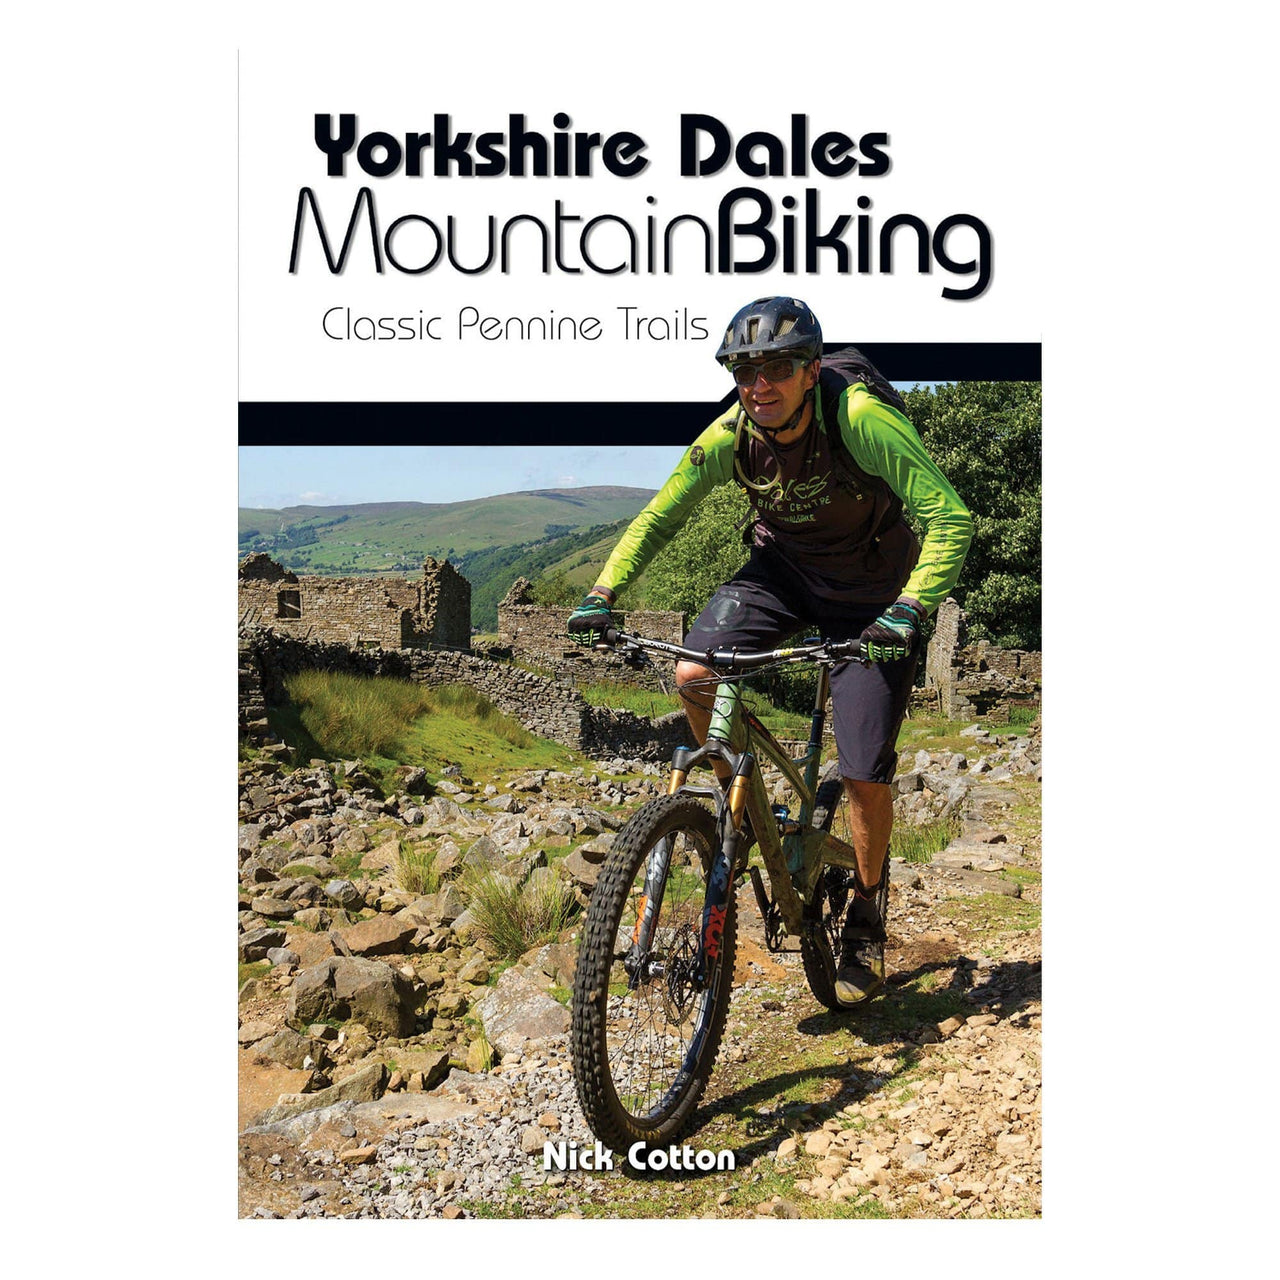 Yorkshire Dales Mountain Biking; Classic Pennine Trails